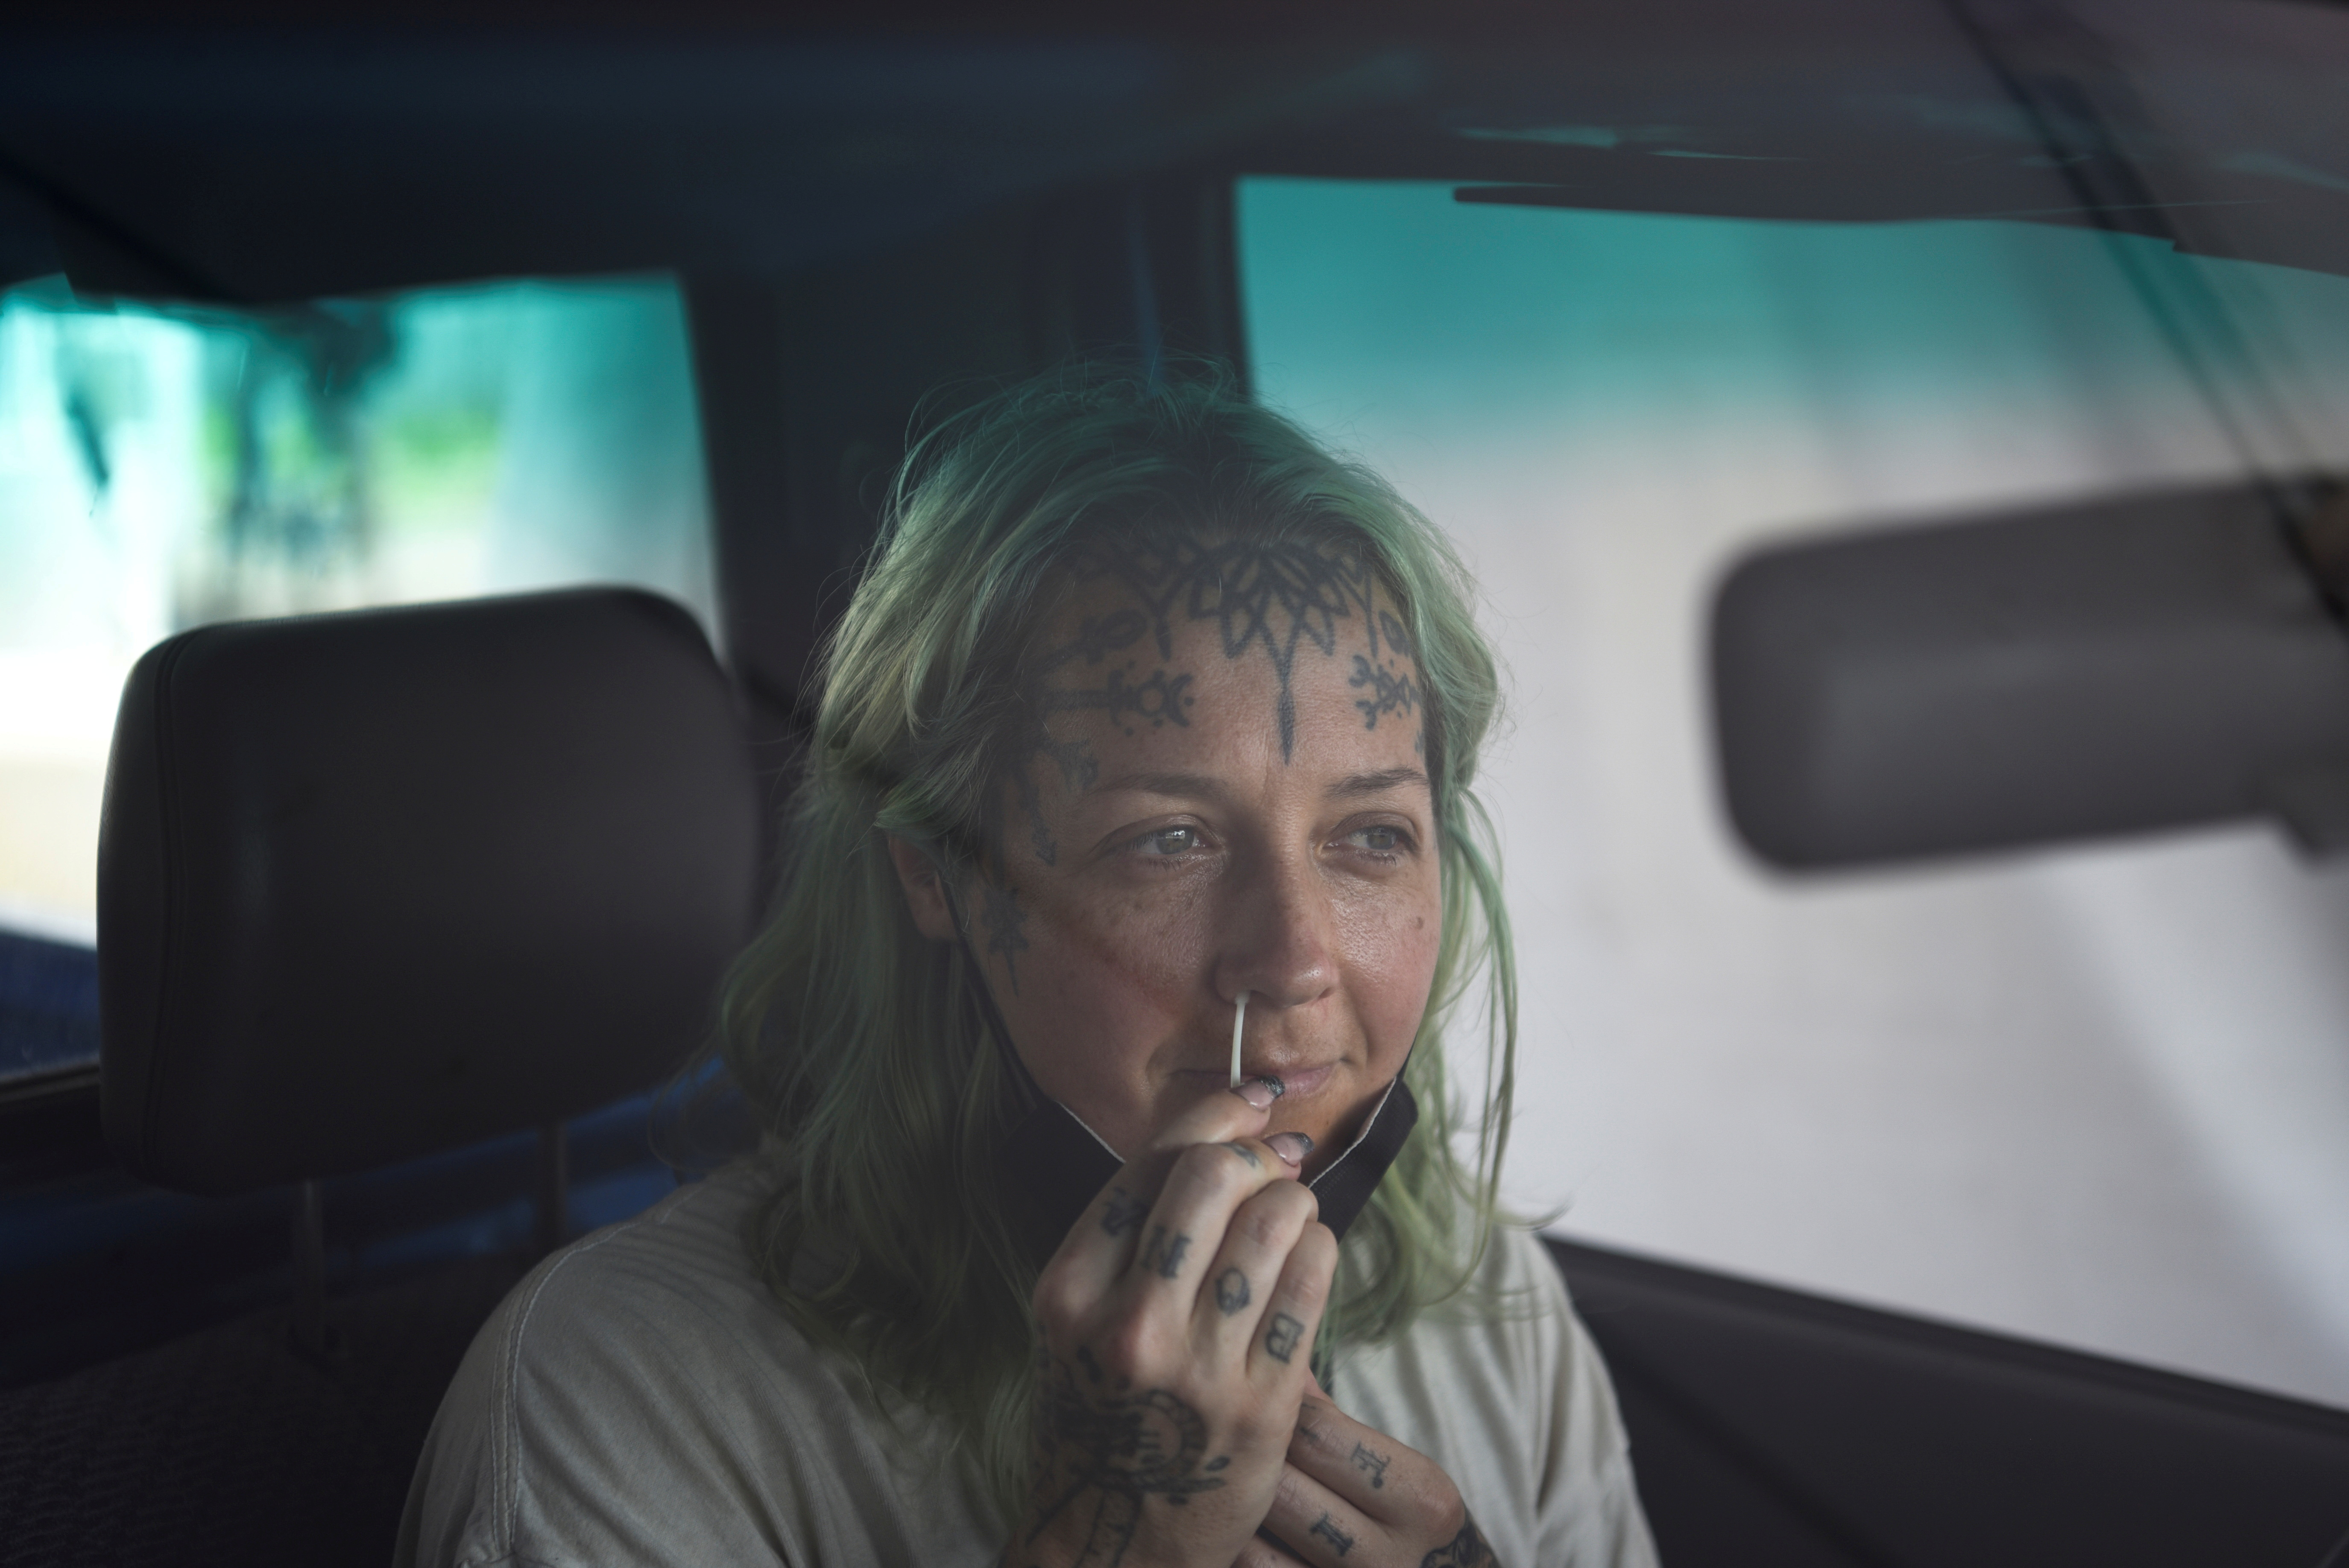 A person uses a nasal swab to provide a sample to be tested for the coronavirus disease (COVID-19) as cases surge across the state, in New Orleans, Louisiana, U.S., August 4, 2021. REUTERS/Callaghan O'Hare/File Photo